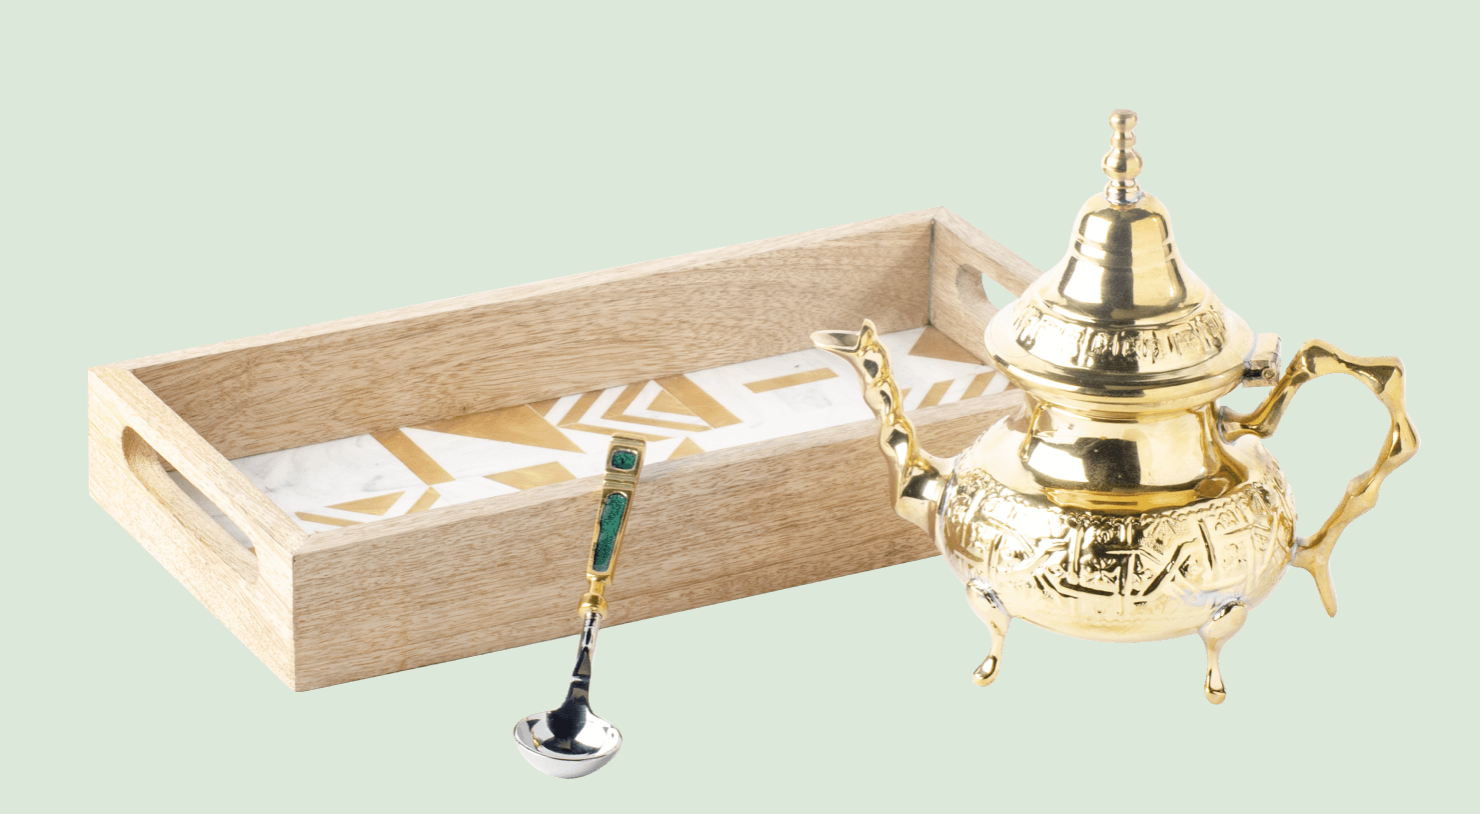 A wooden serving tray, intricate gold tea pot, and fancy serving spoon against a teal background